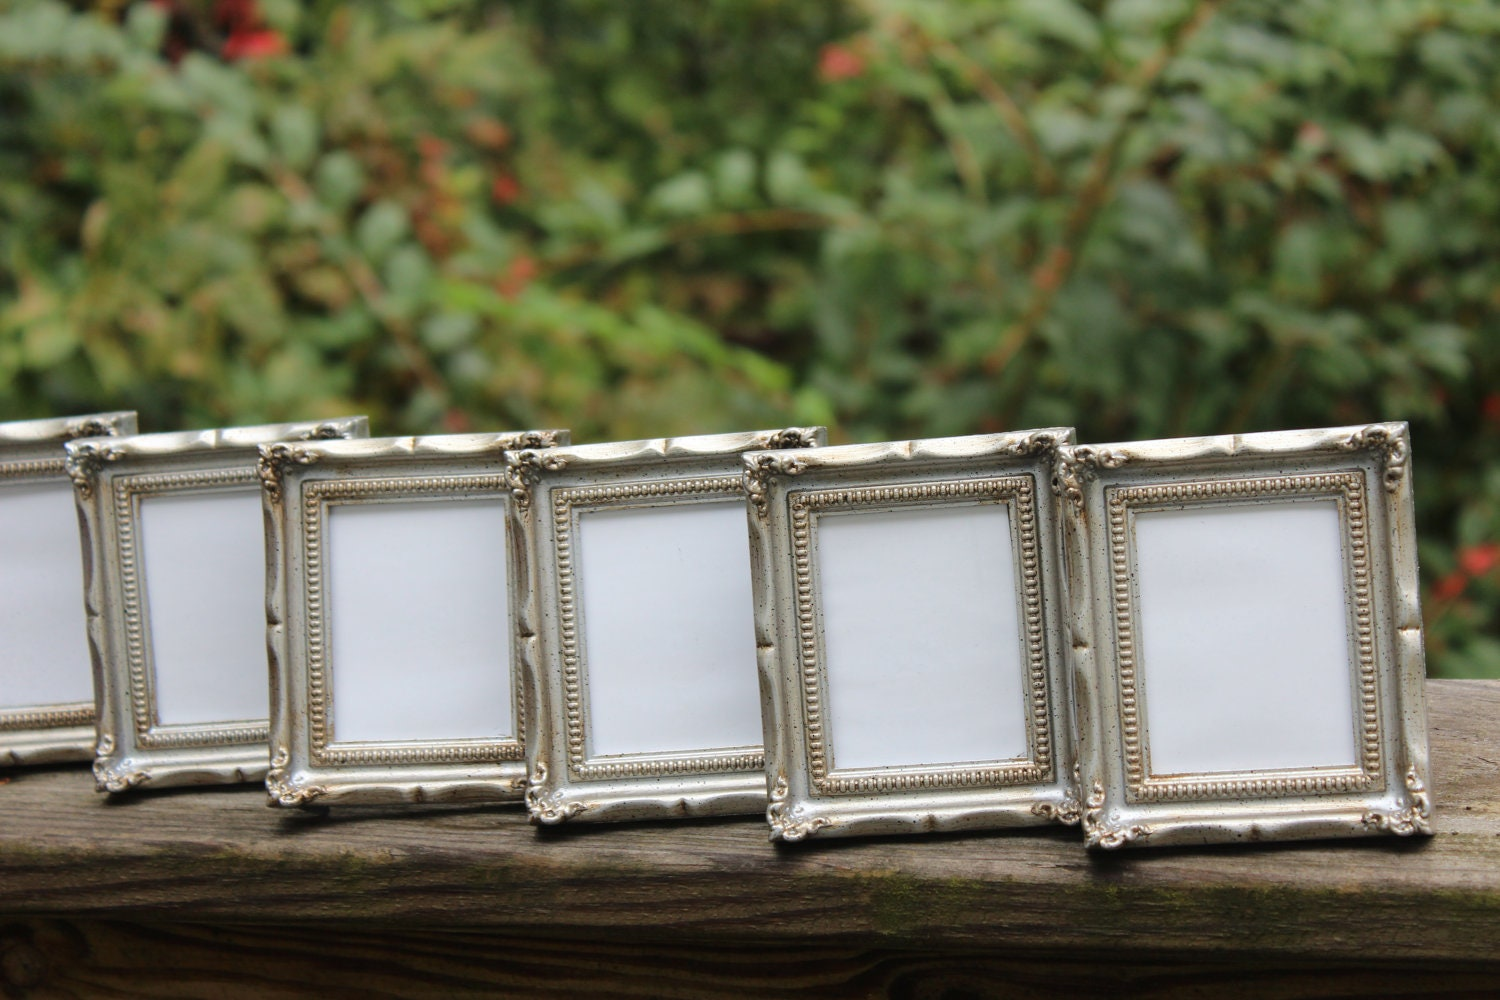 set of 6 mini vintage style frames silver chrome metallic. Black Bedroom Furniture Sets. Home Design Ideas